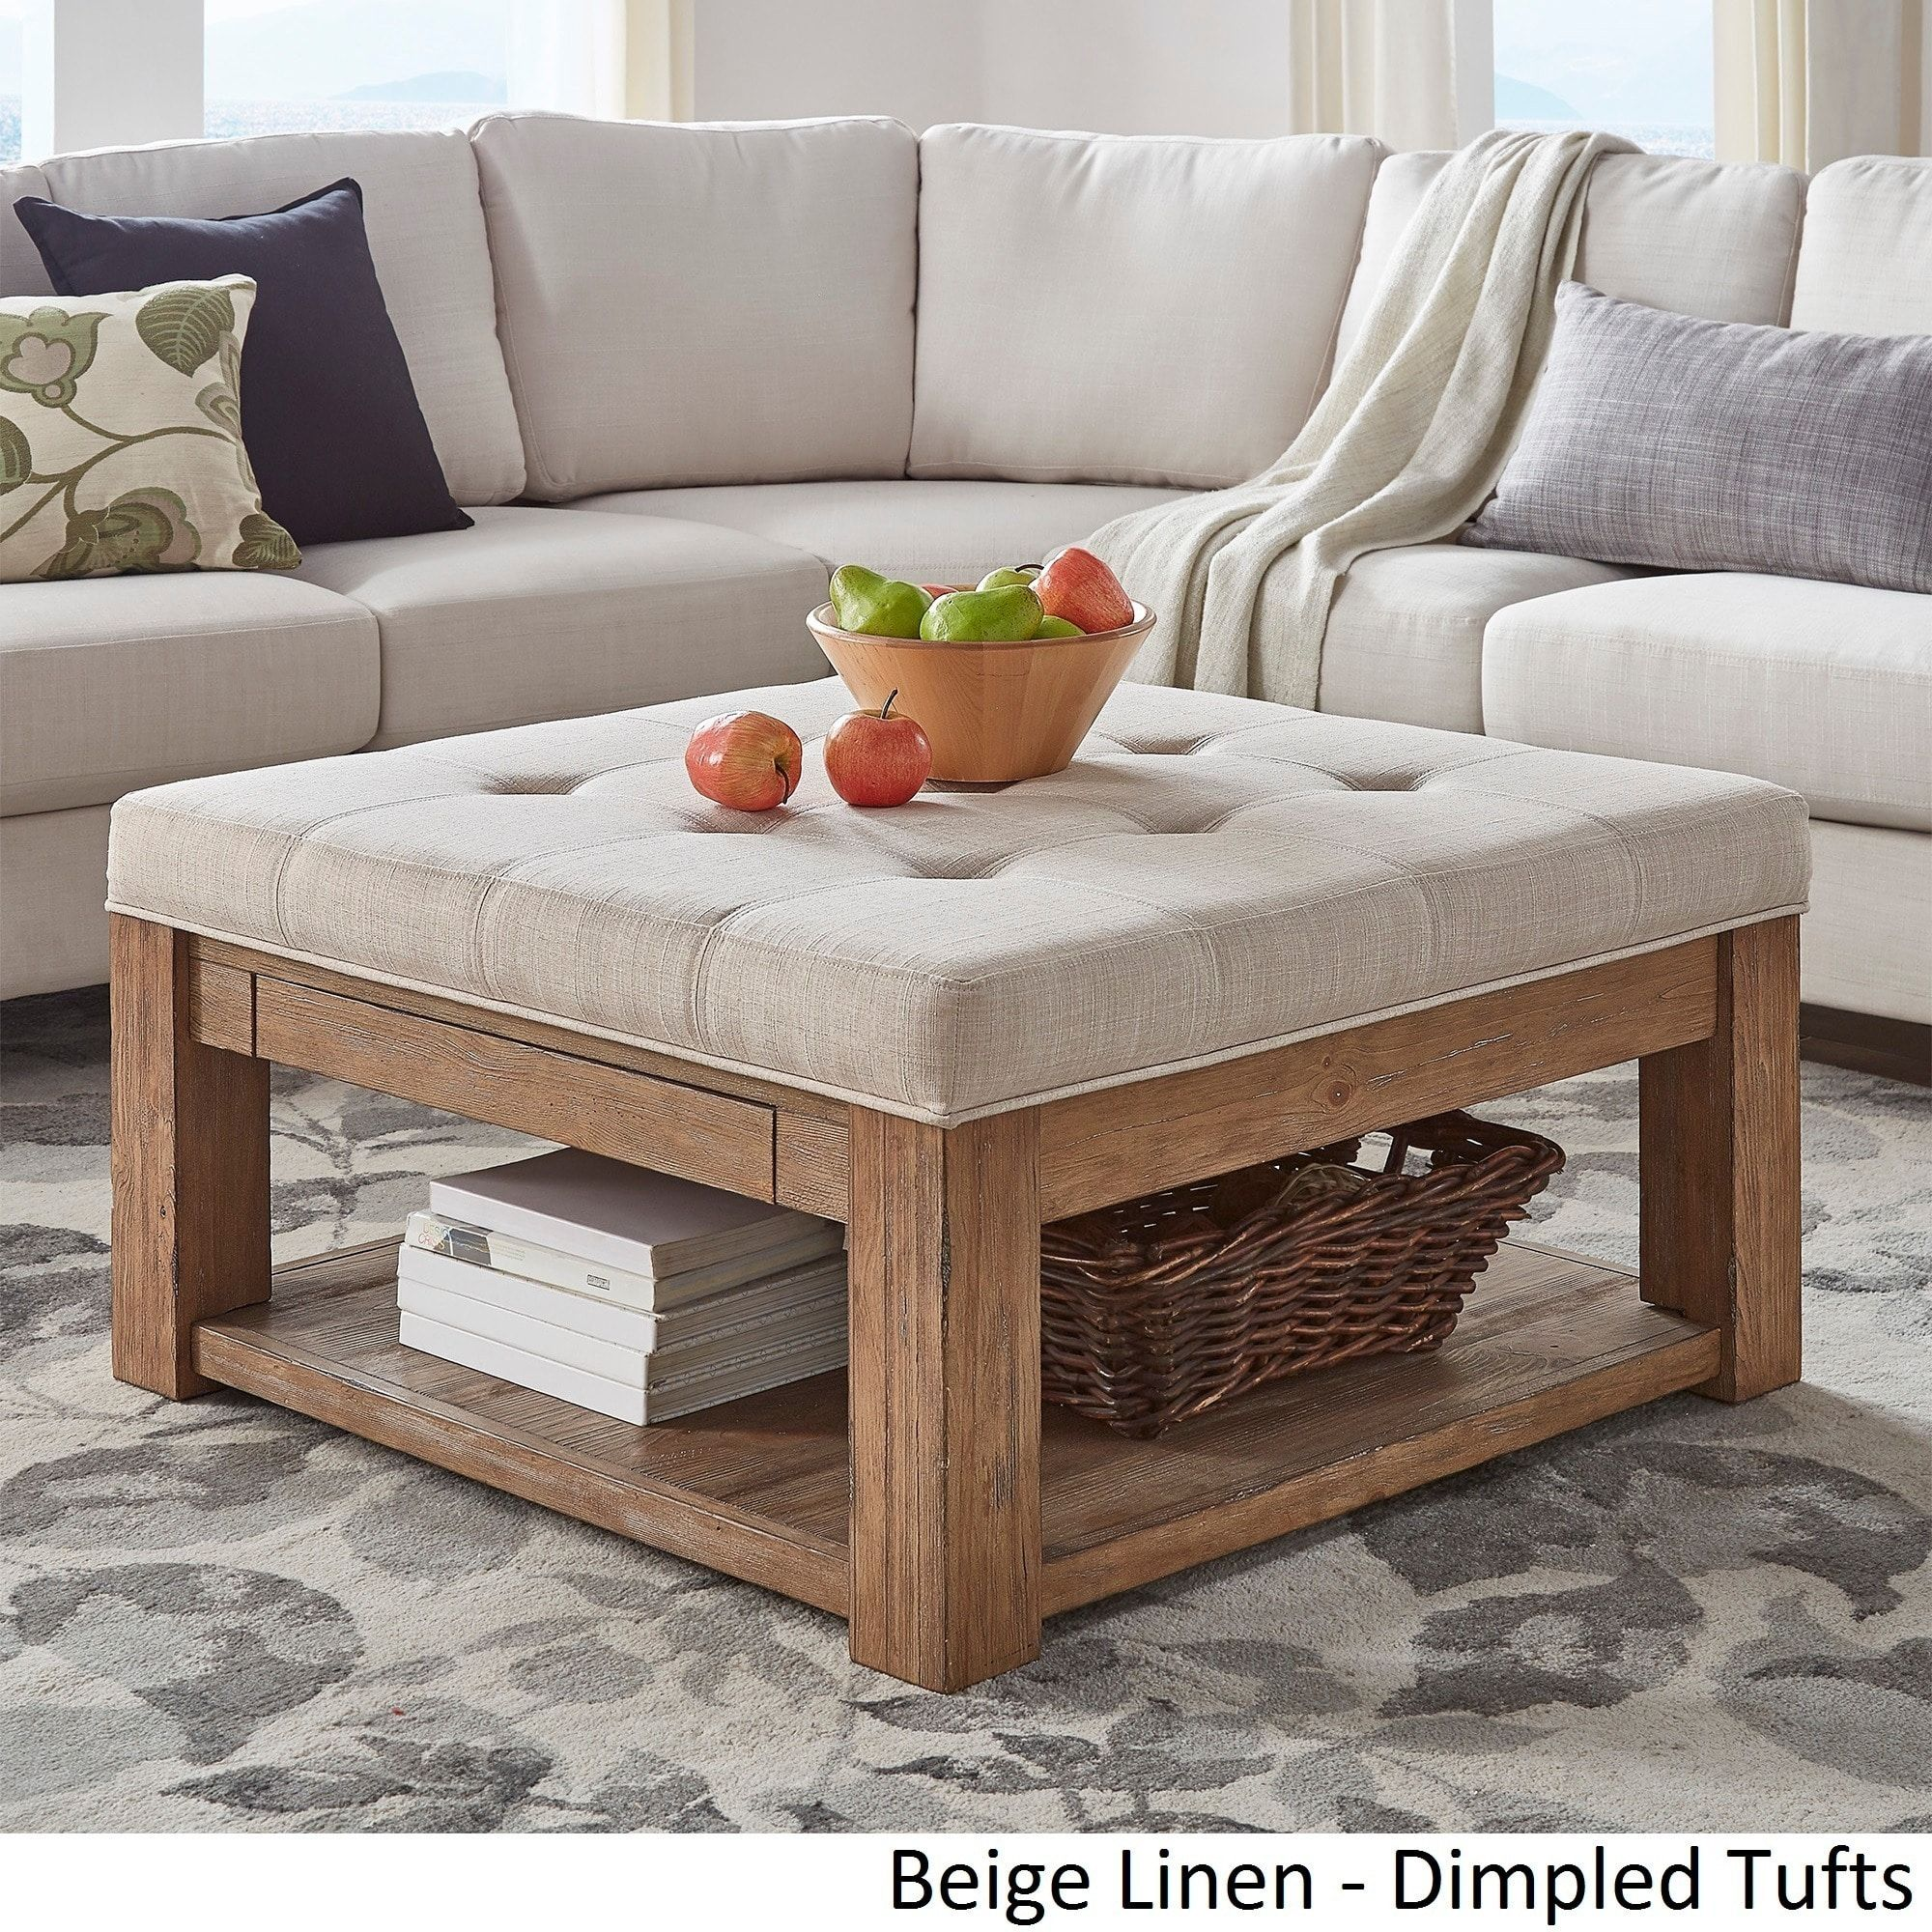 Lennon Pine Square Storage Ottoman Coffee Table by iNSPIRE Q Artisan  ([Beige Linen]